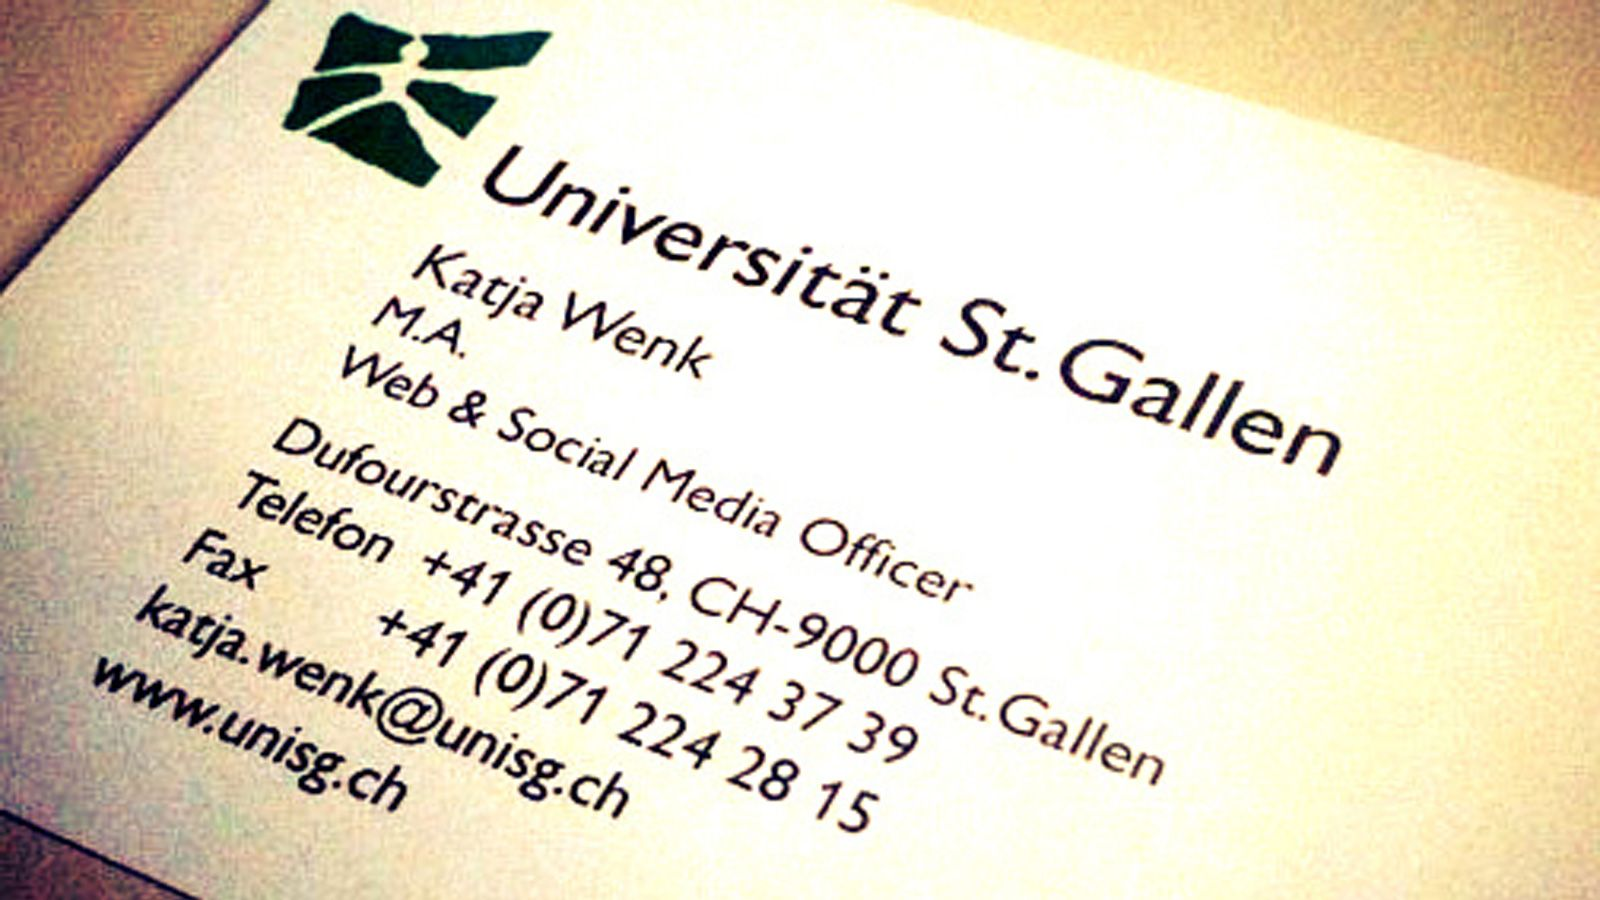 Social Media Officer an der HSG